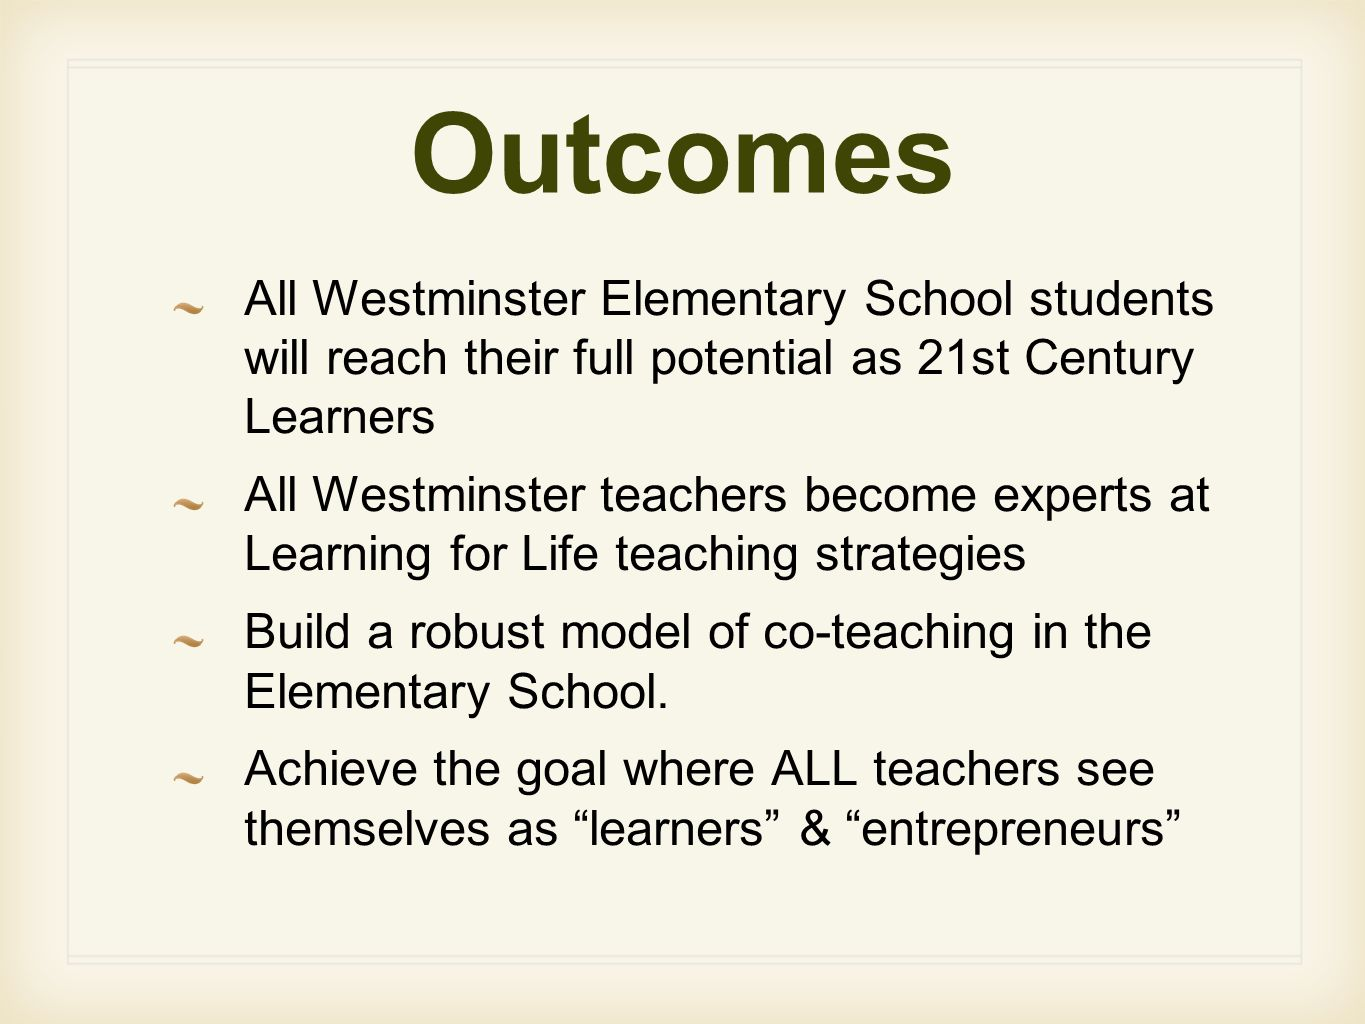 Outcomes All Westminster Elementary School students will reach their full potential as 21st Century Learners.